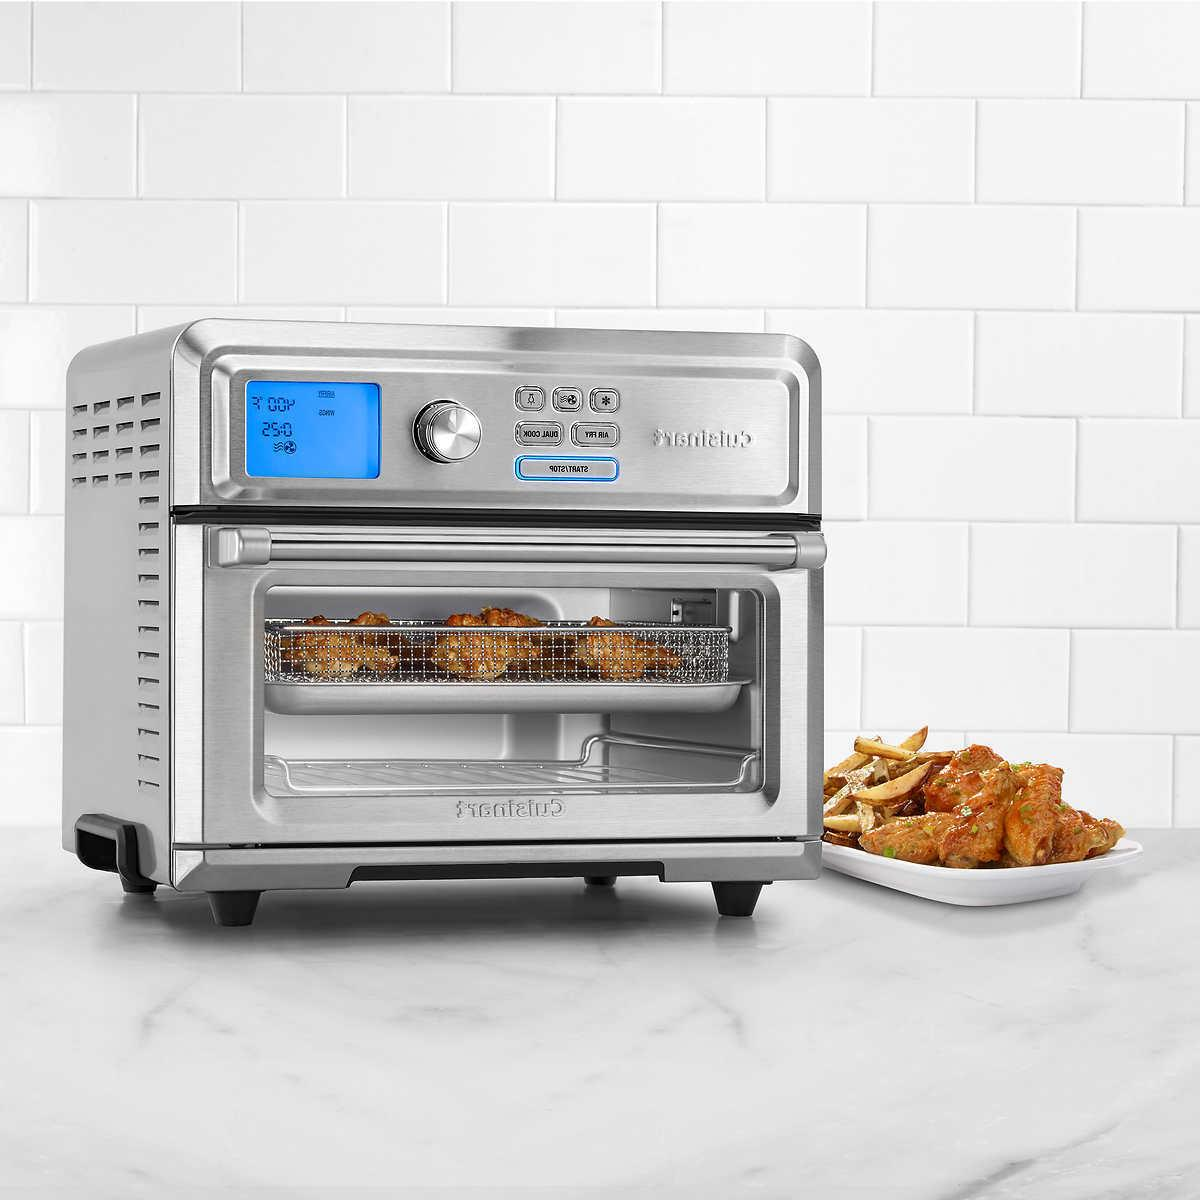 NEW CUISINART TOA-65 AIR FRYER TOASTER OVEN 7 FUNCTION 4LB C